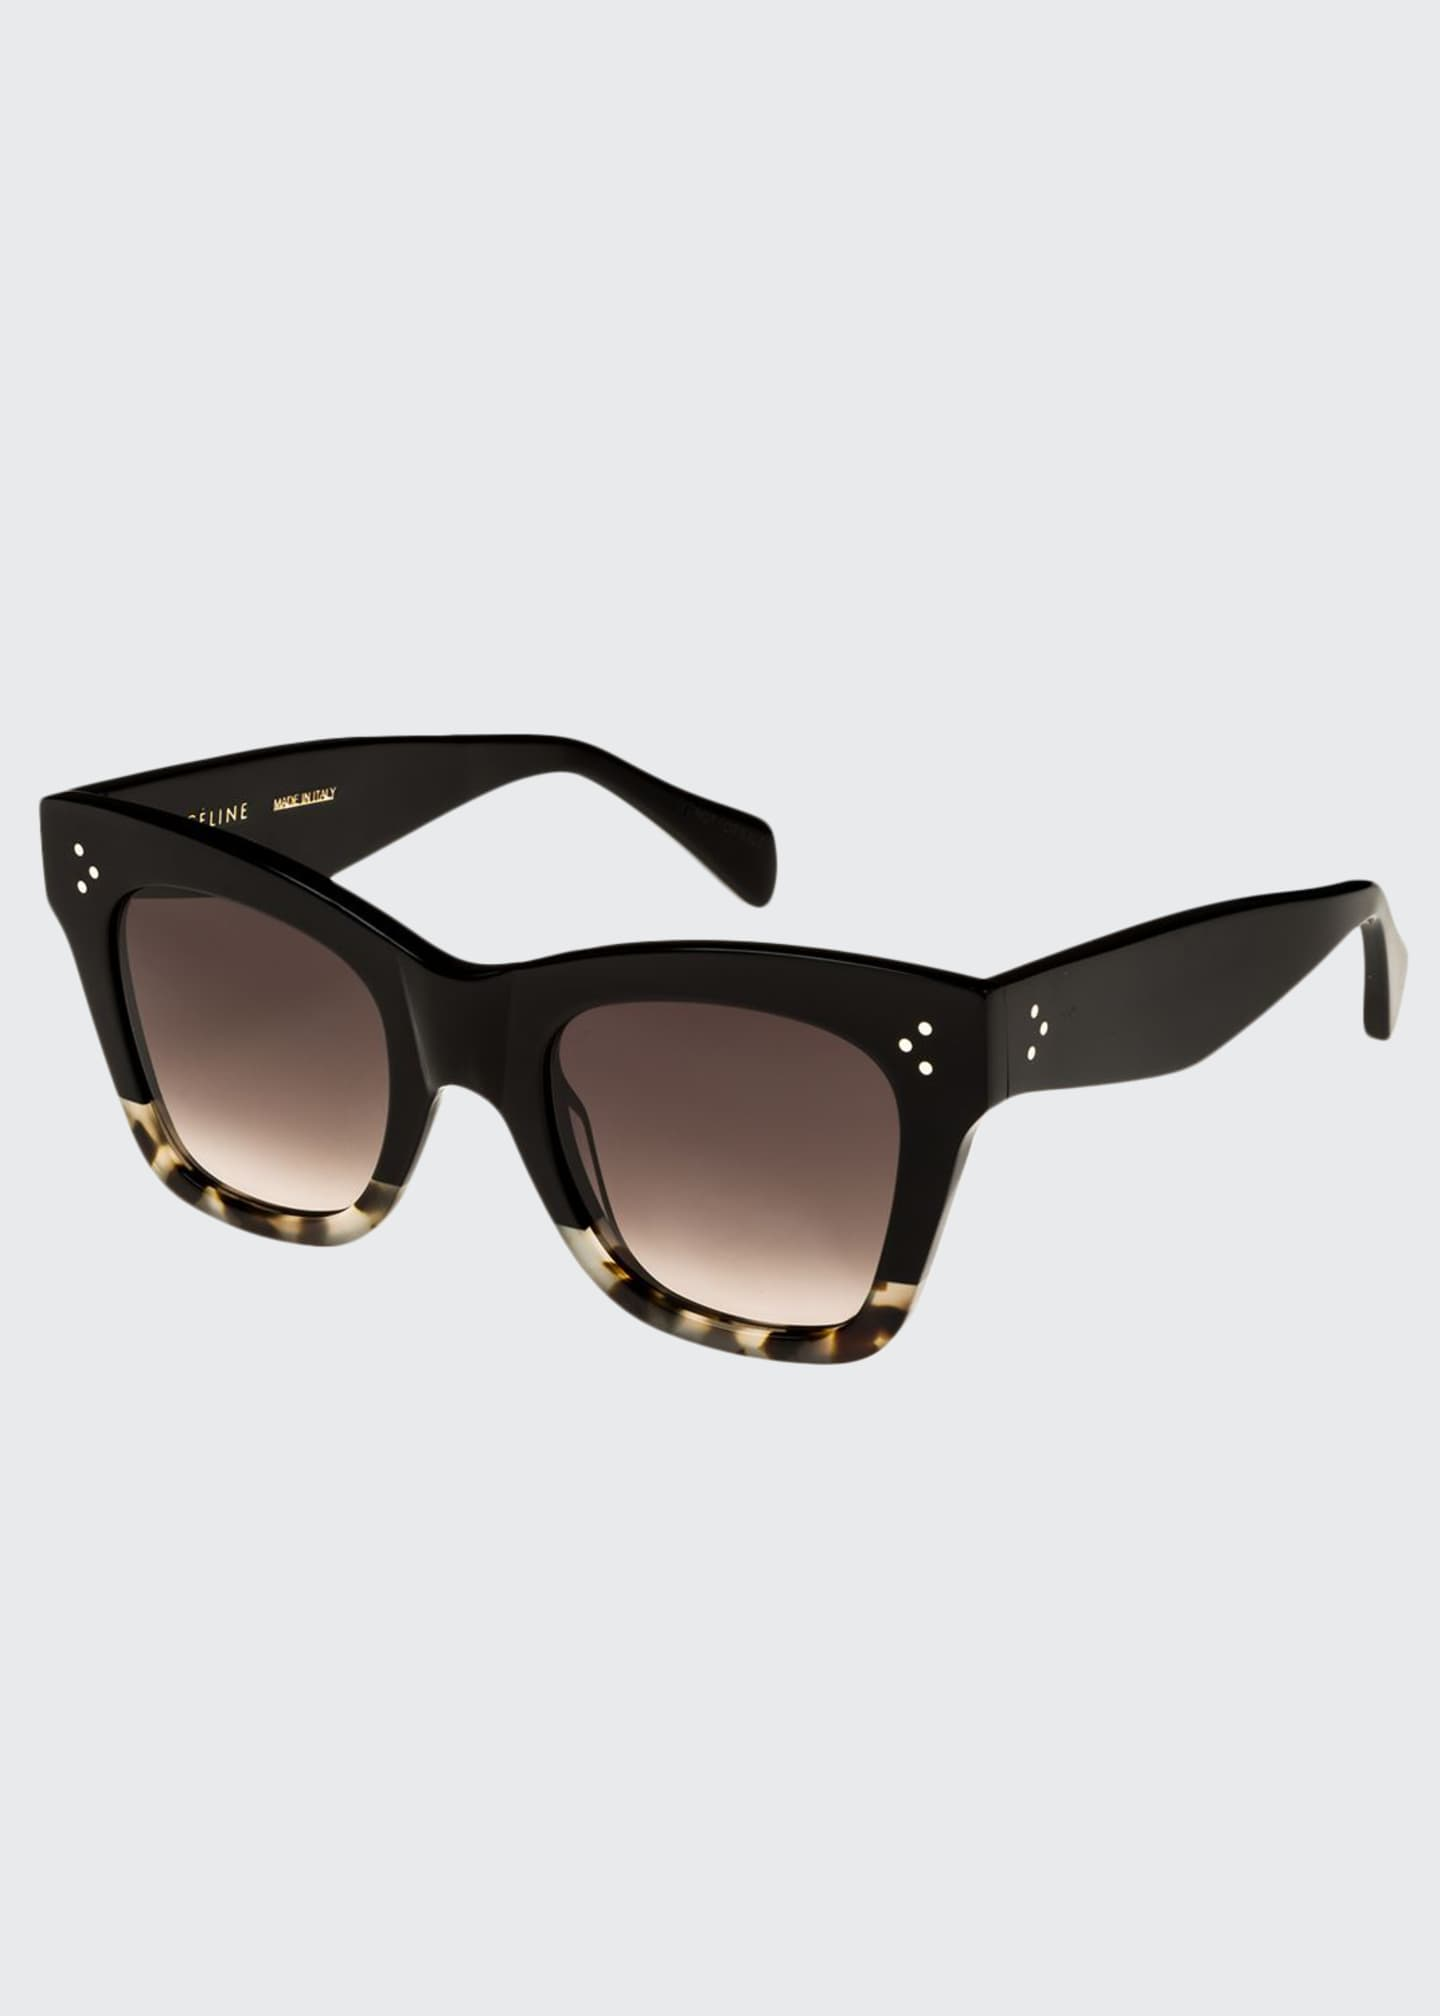 Celine Two-Tone Gradient Cat-Eye Sunglasses, Black